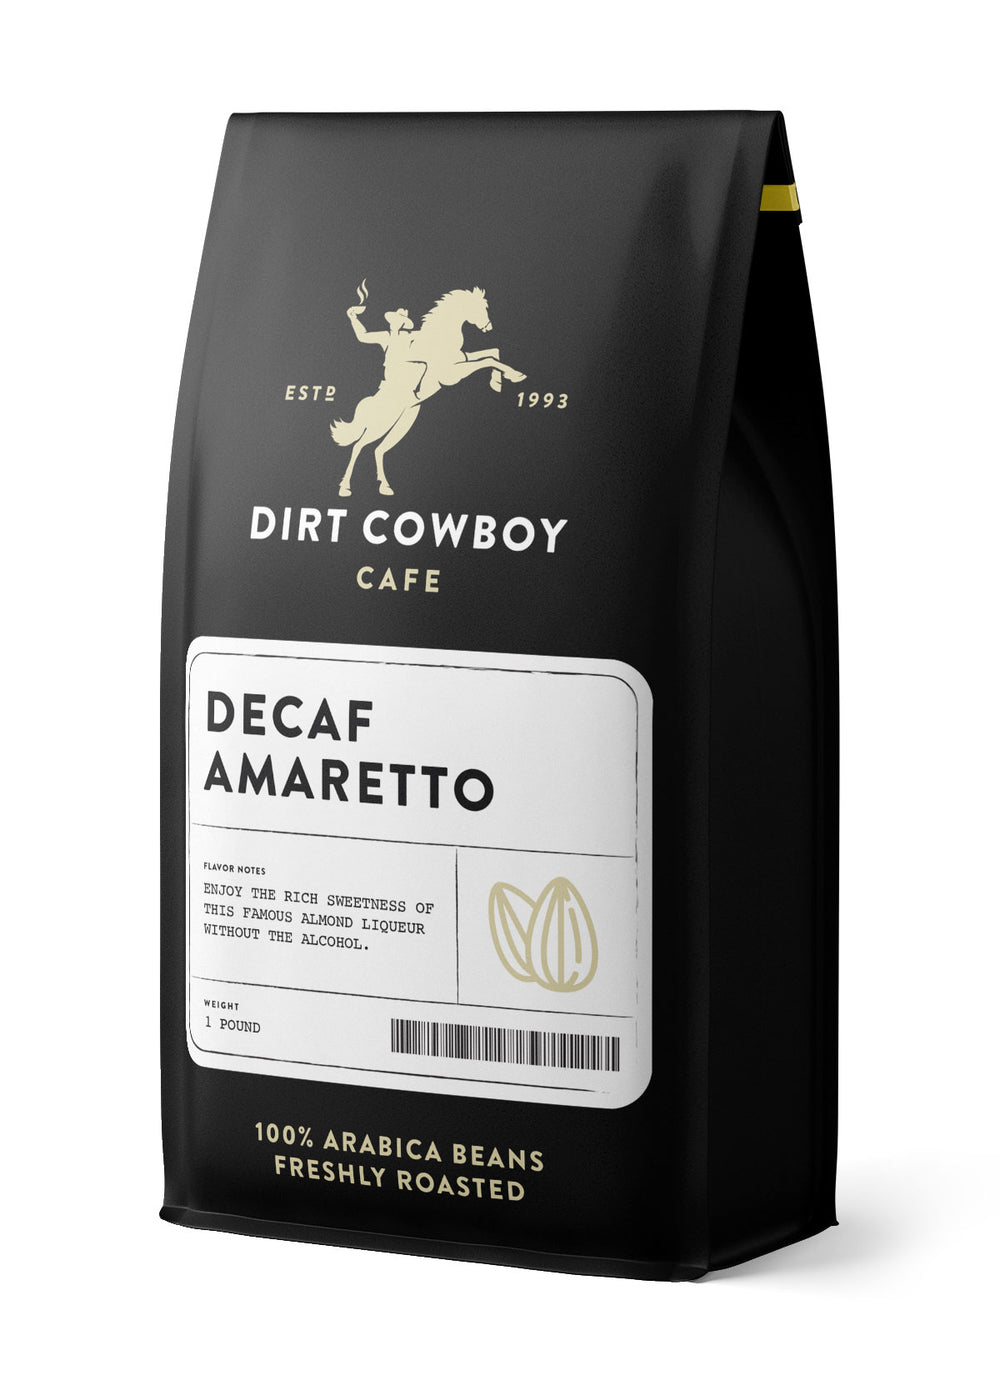 Decaf Amaretto